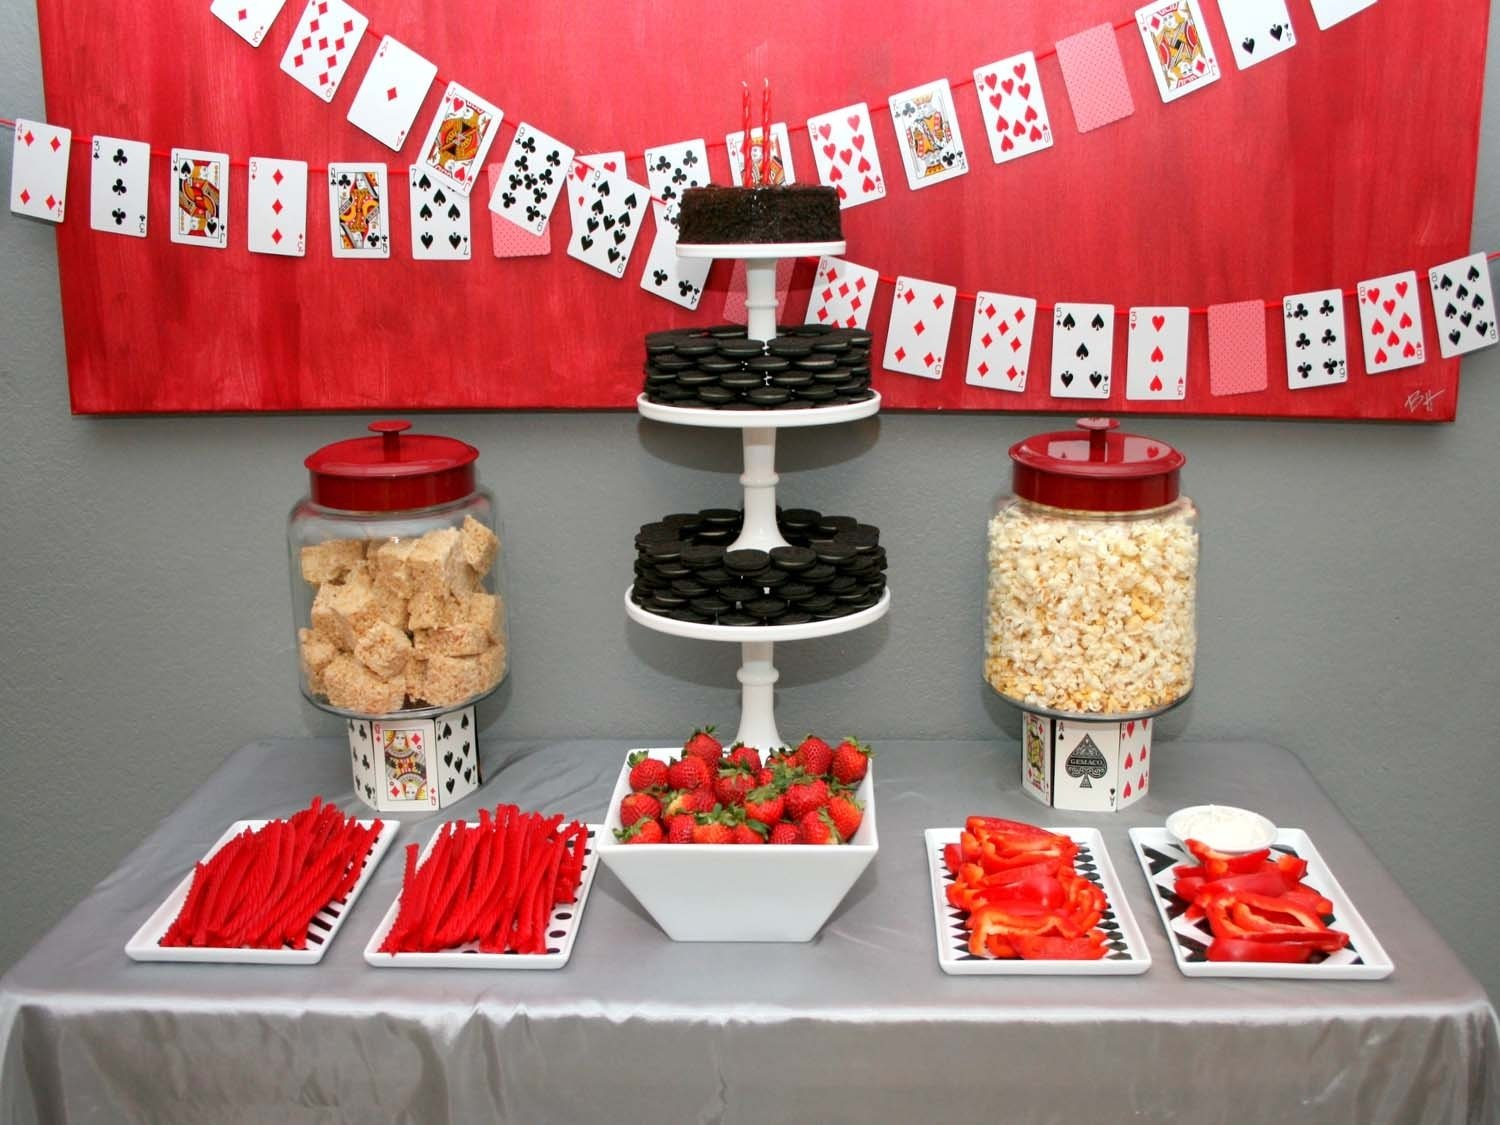 10 Attractive Birthday Party Ideas Las Vegas how to throw a casino party casino party tips planning a casino 2 2020